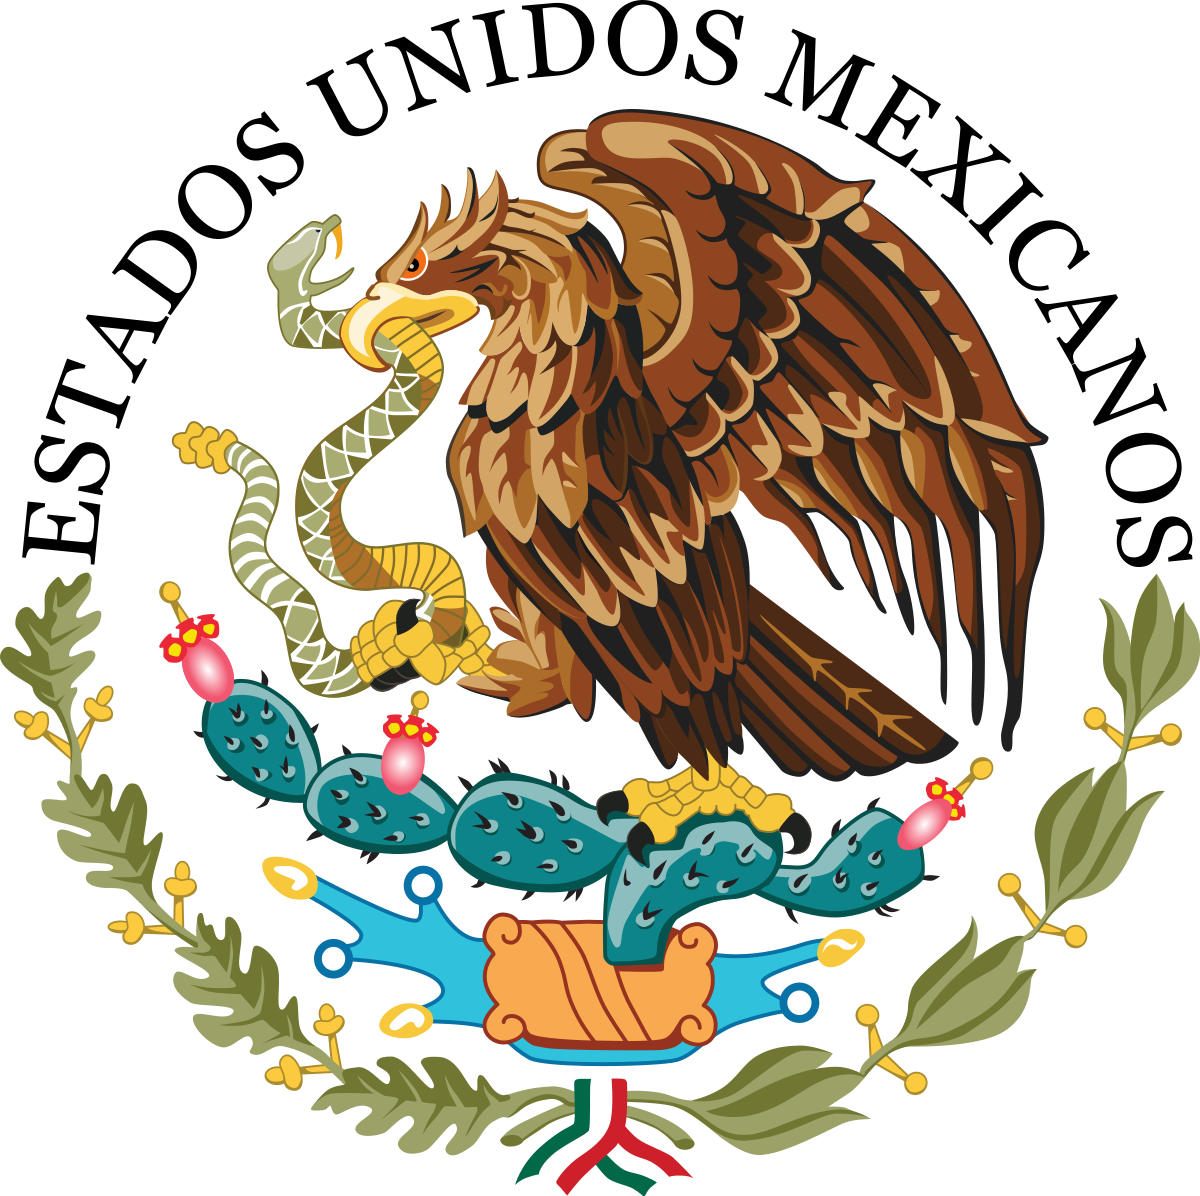 Federal of mexico wikipedia. Congress clipart government person